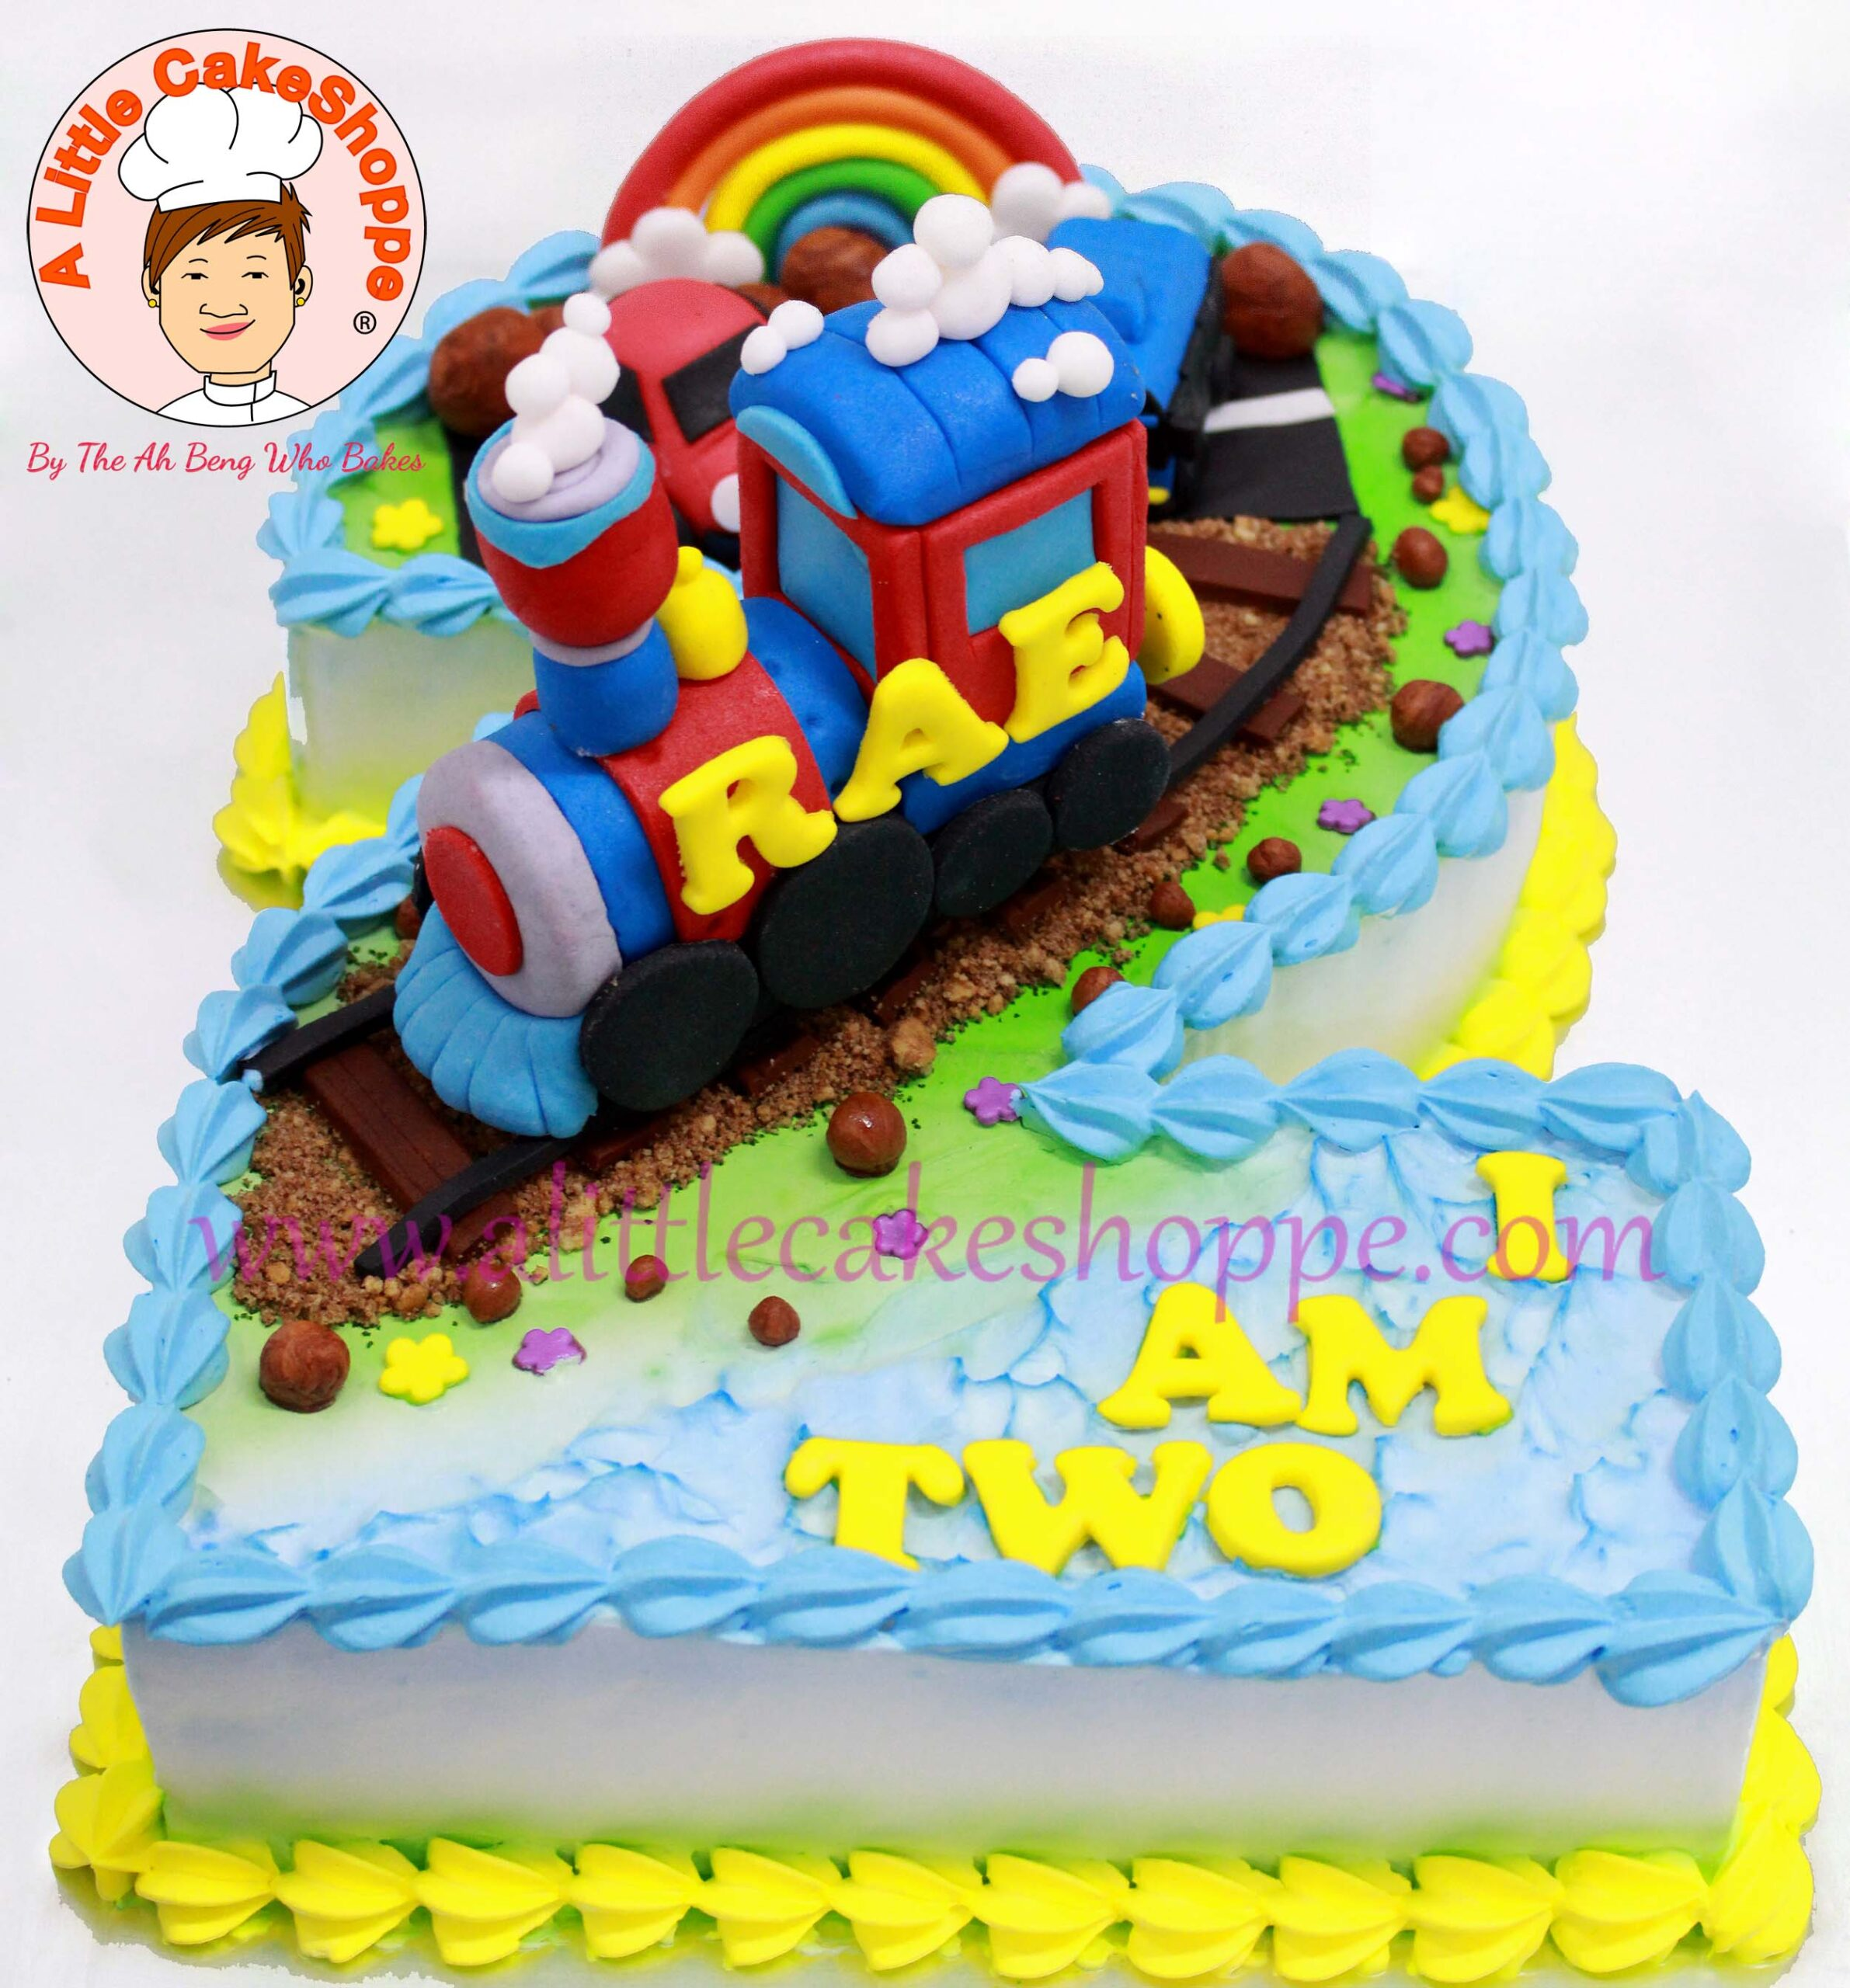 Best Customised Cake Singapore custom cake 2D 3D birthday cake cupcakes wedding corporate events anniversary fondant fresh cream buttercream cakes alittlecakeshoppe a little cake shoppe compliments review singapore bakers SG cakeshop ah beng who bakes train